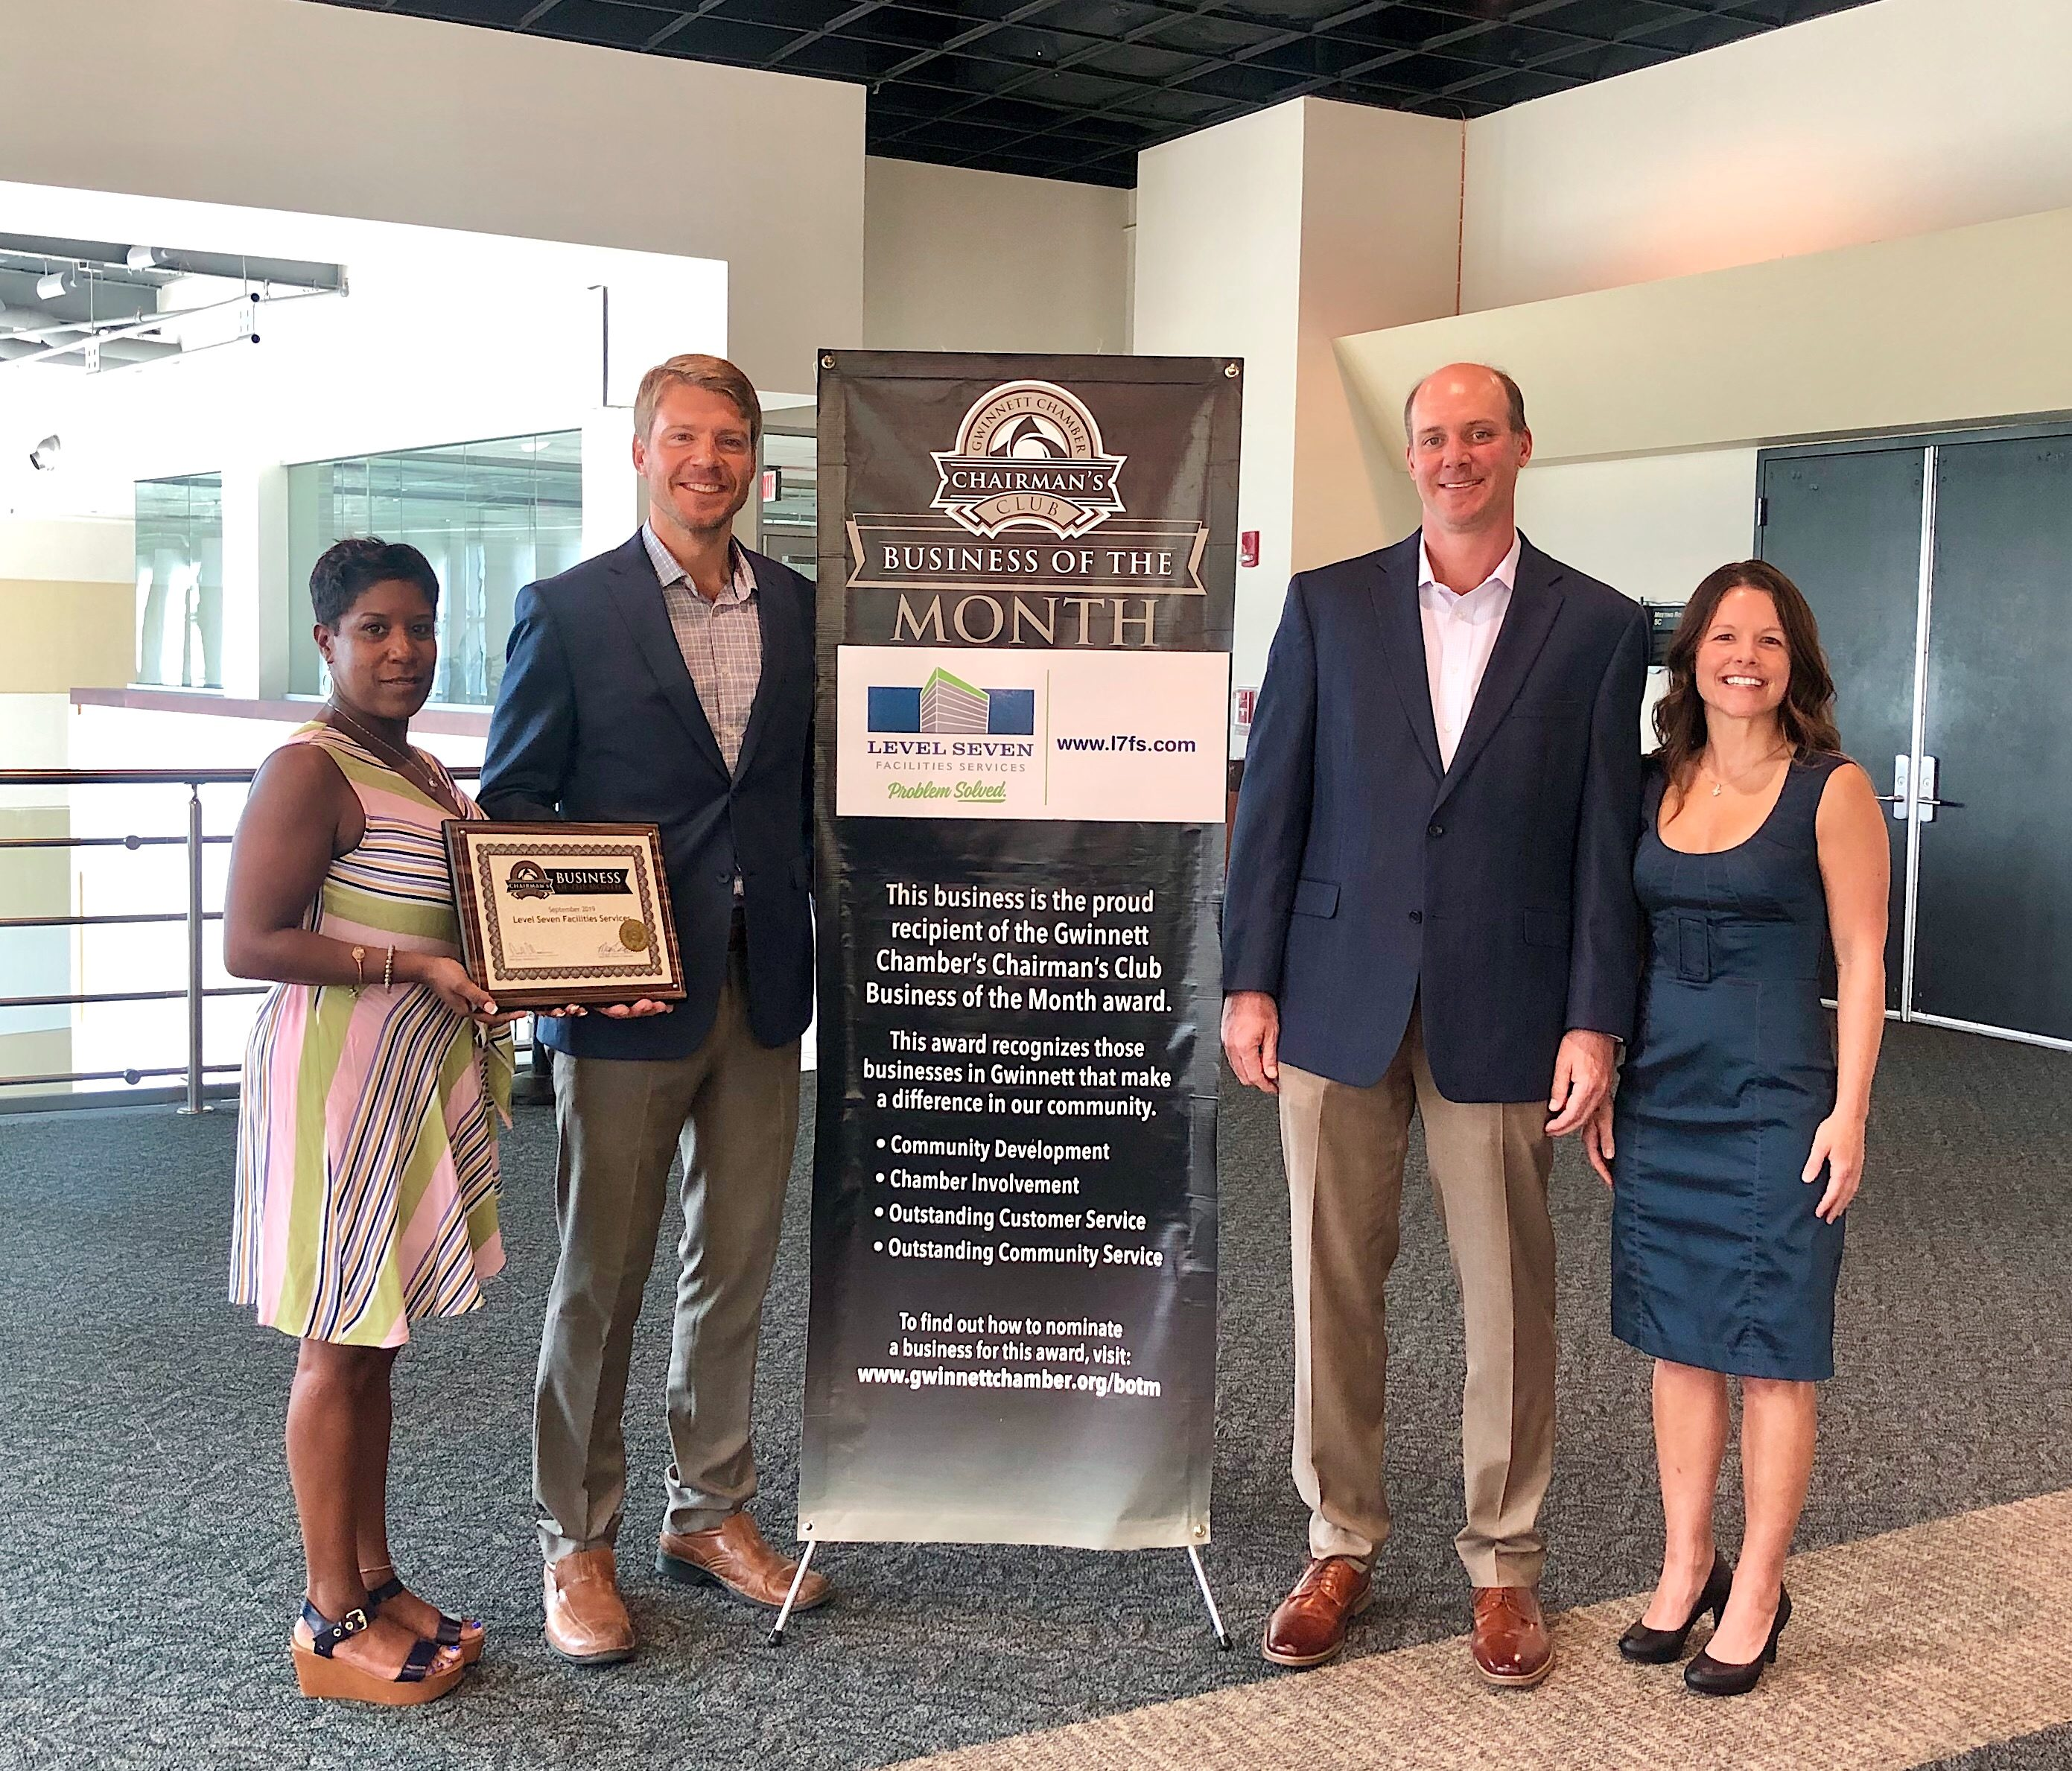 Members of our senior staff receiving the Gwinnett Chamber's Chairman's Club Business of the Month award